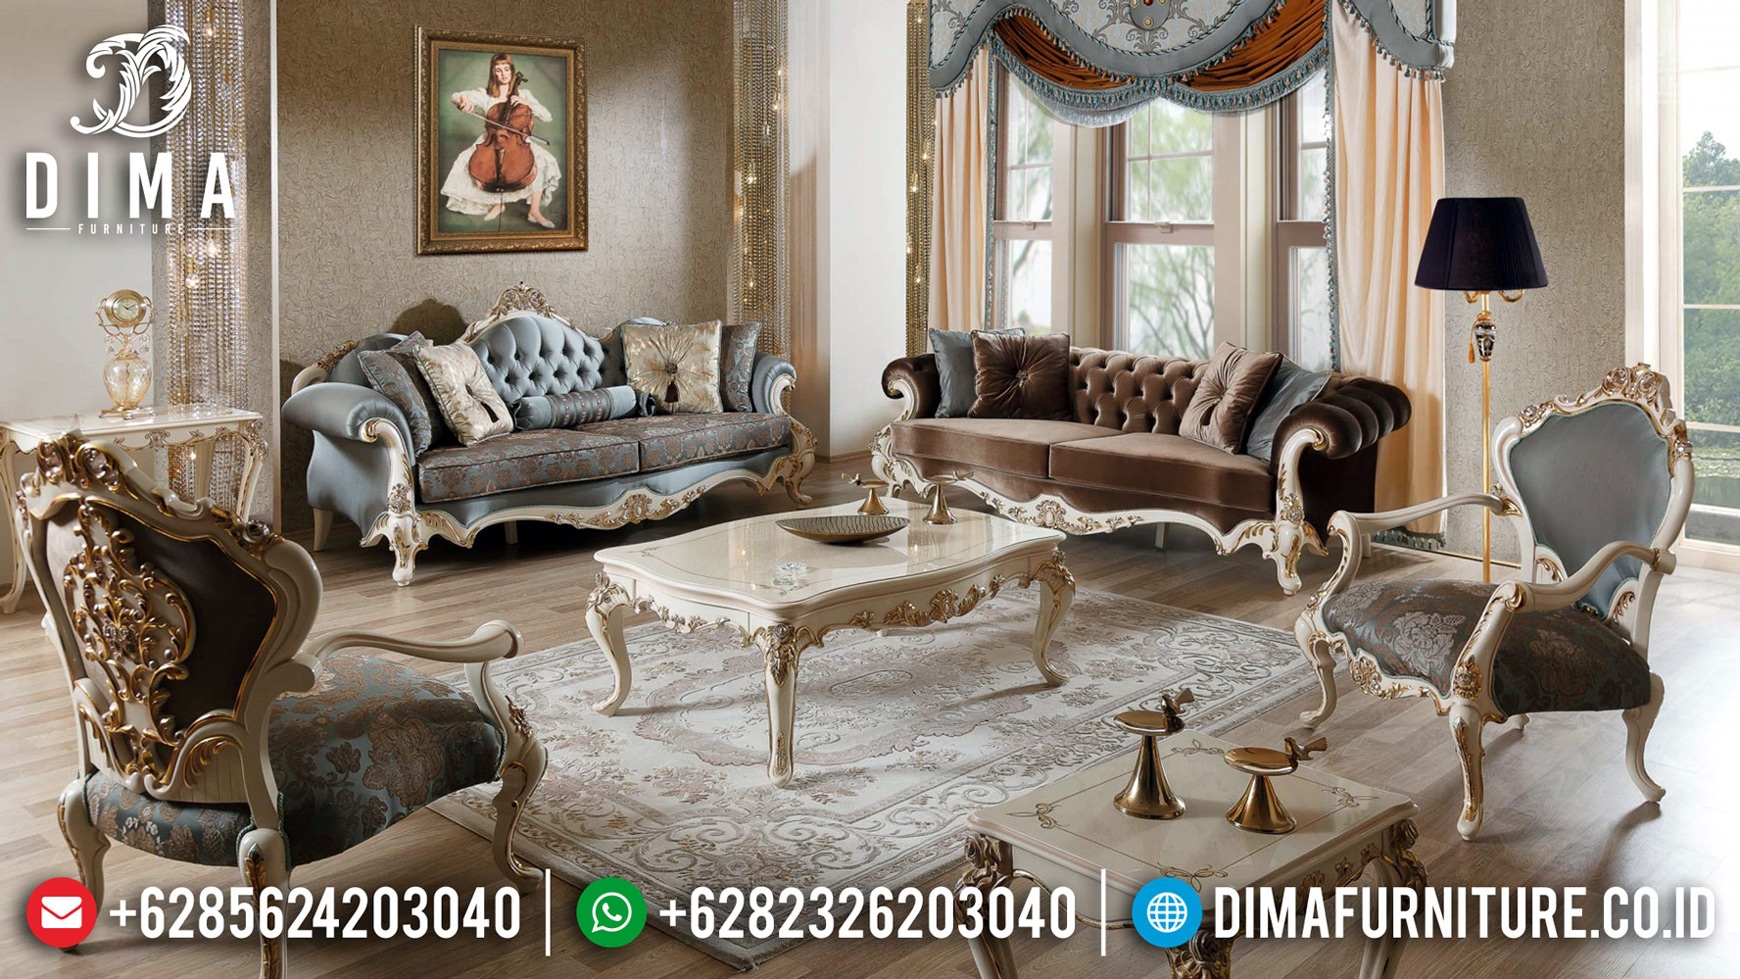 New Models Sofa Tamu Mewah Luxury Carving Best Quality Solid Wood TTJ-0706